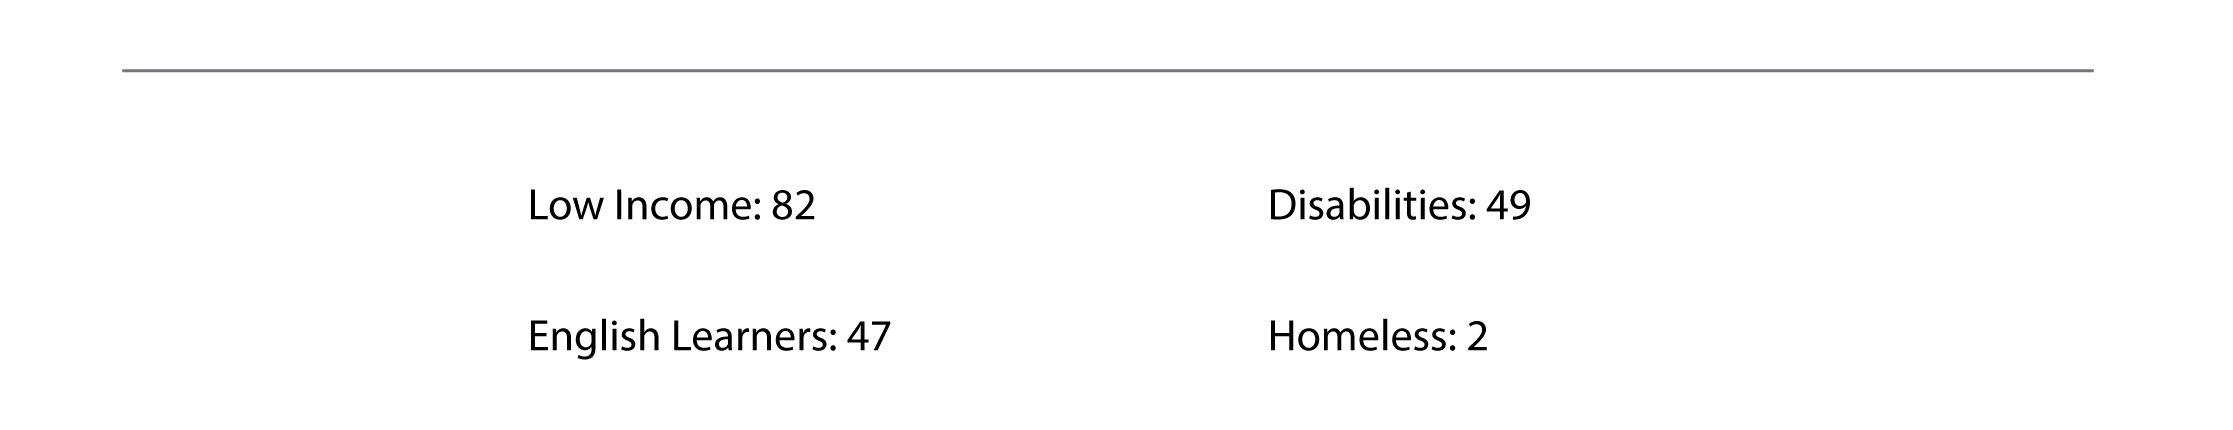 Low Income 82 Disabilities 49 English Learners 47 Homeless 2